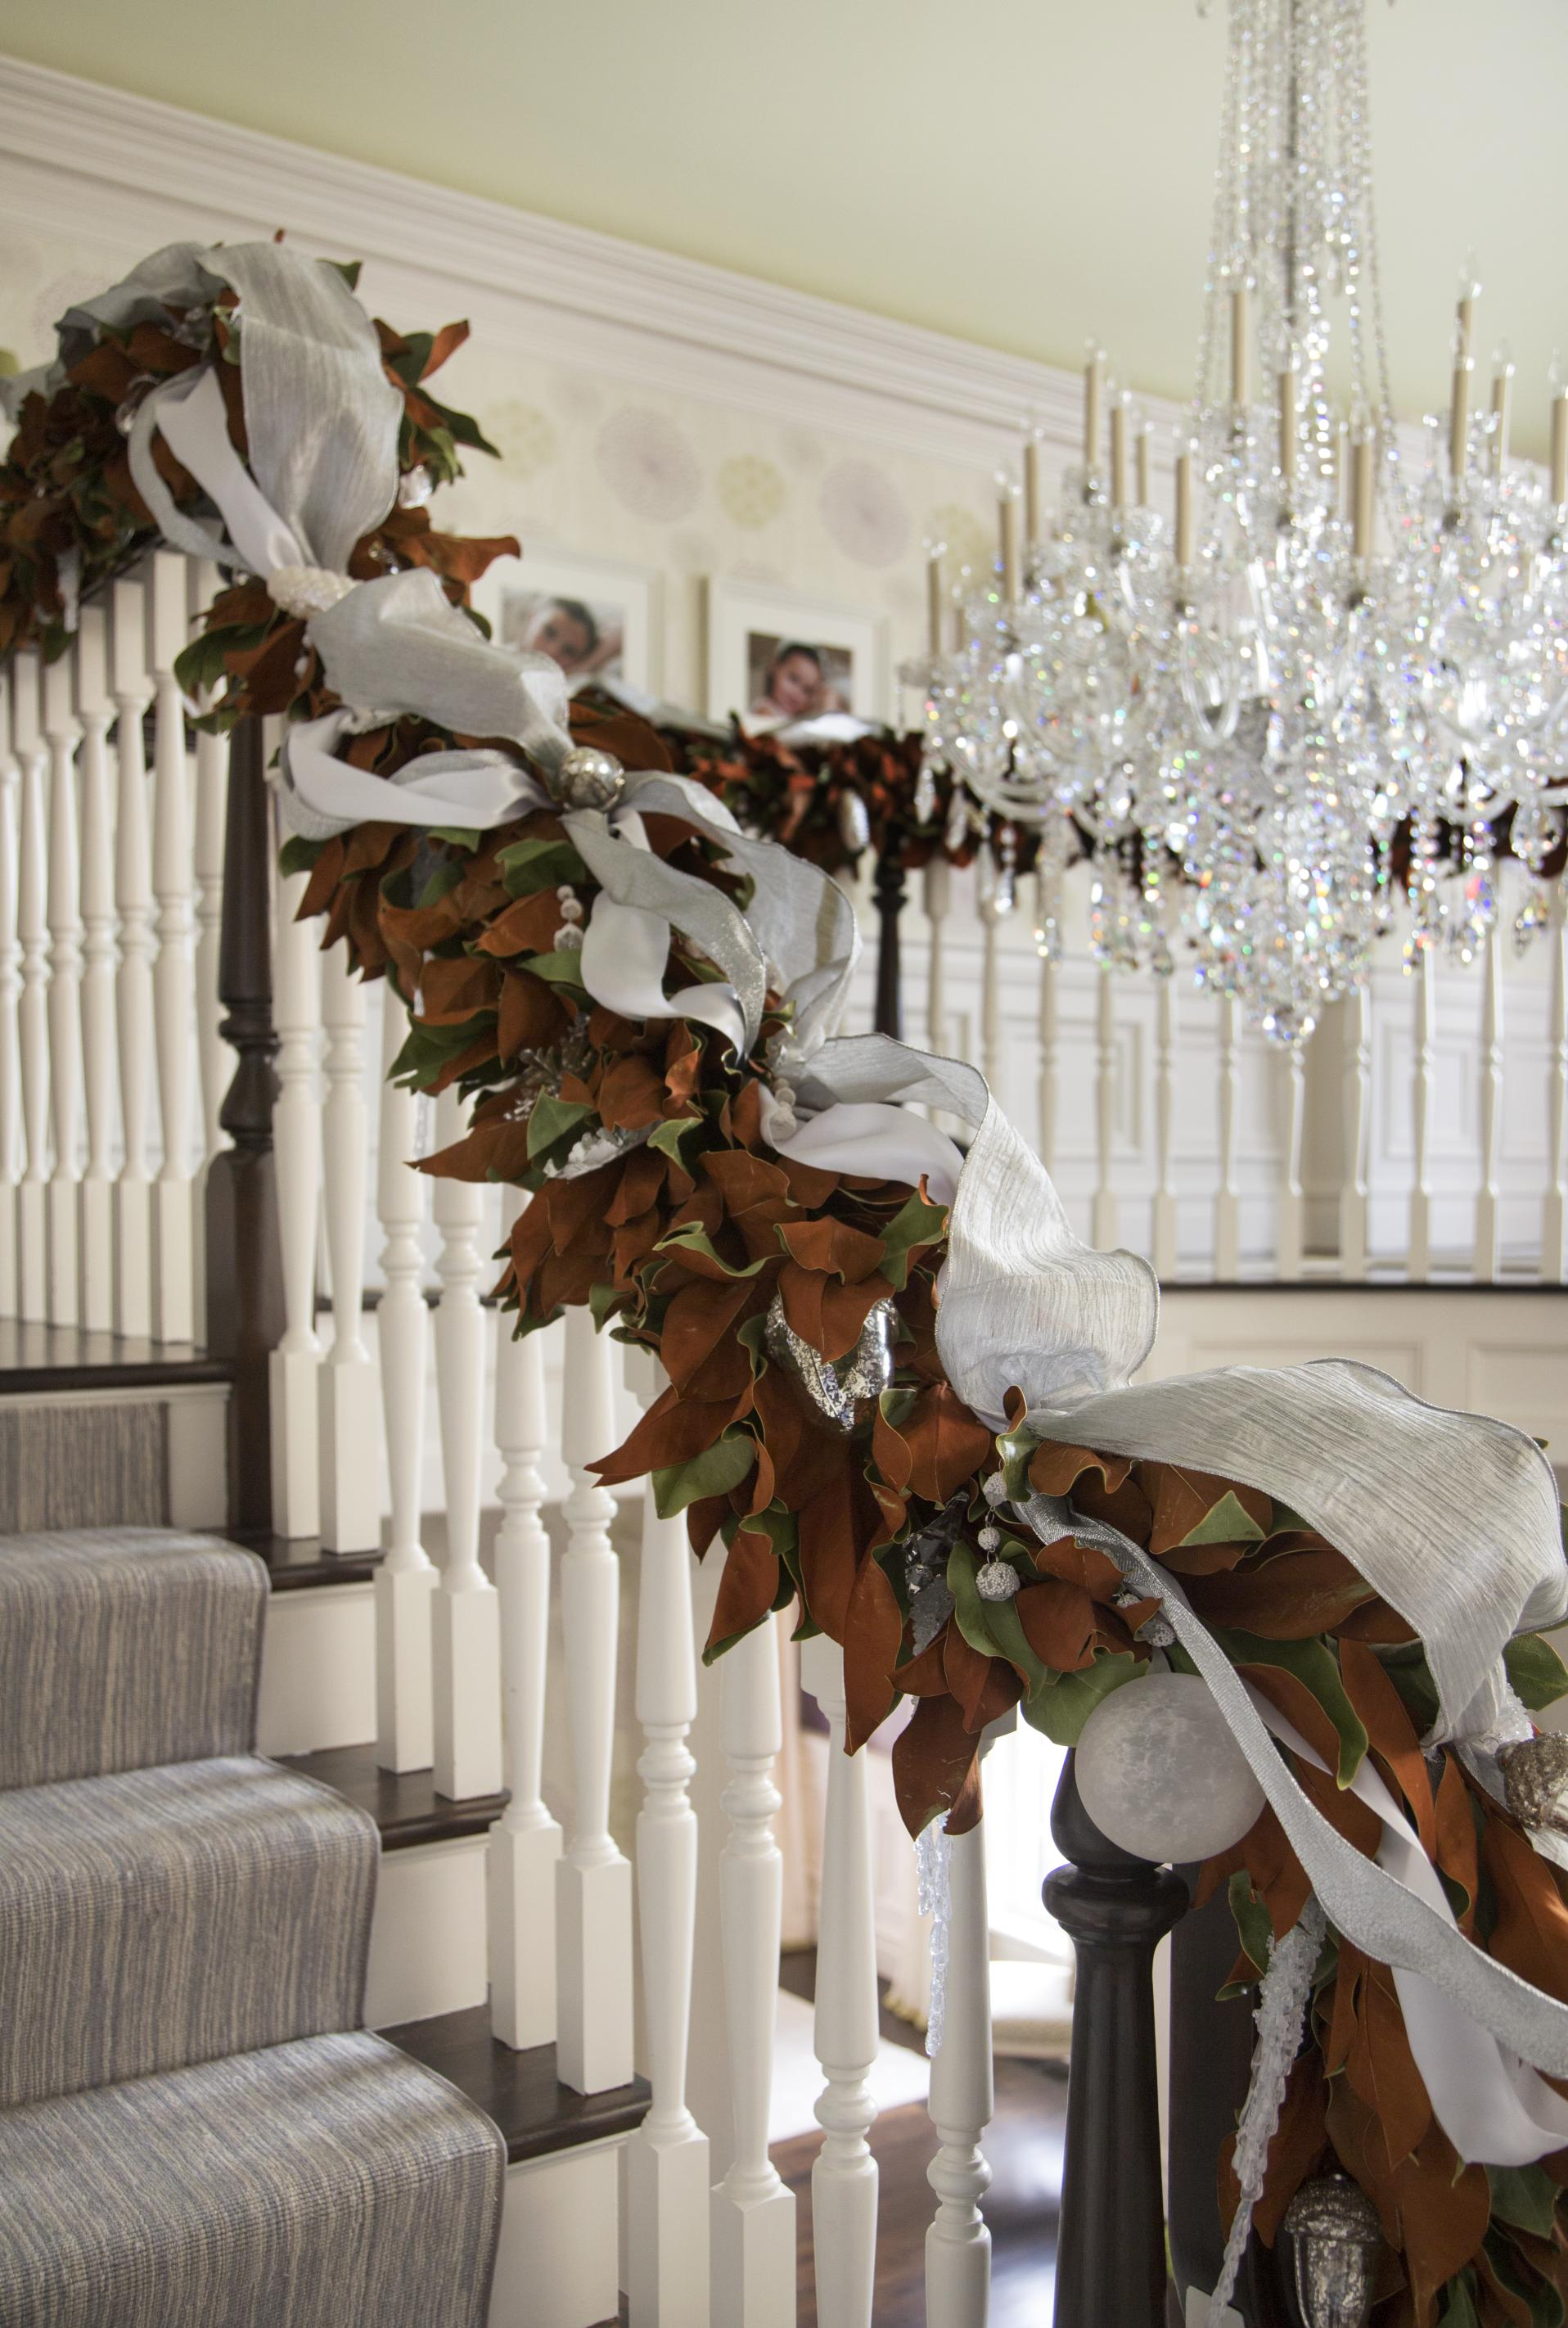 Christmas decorating staircase entry archives splendid habitat interior design and style for Escalier decor